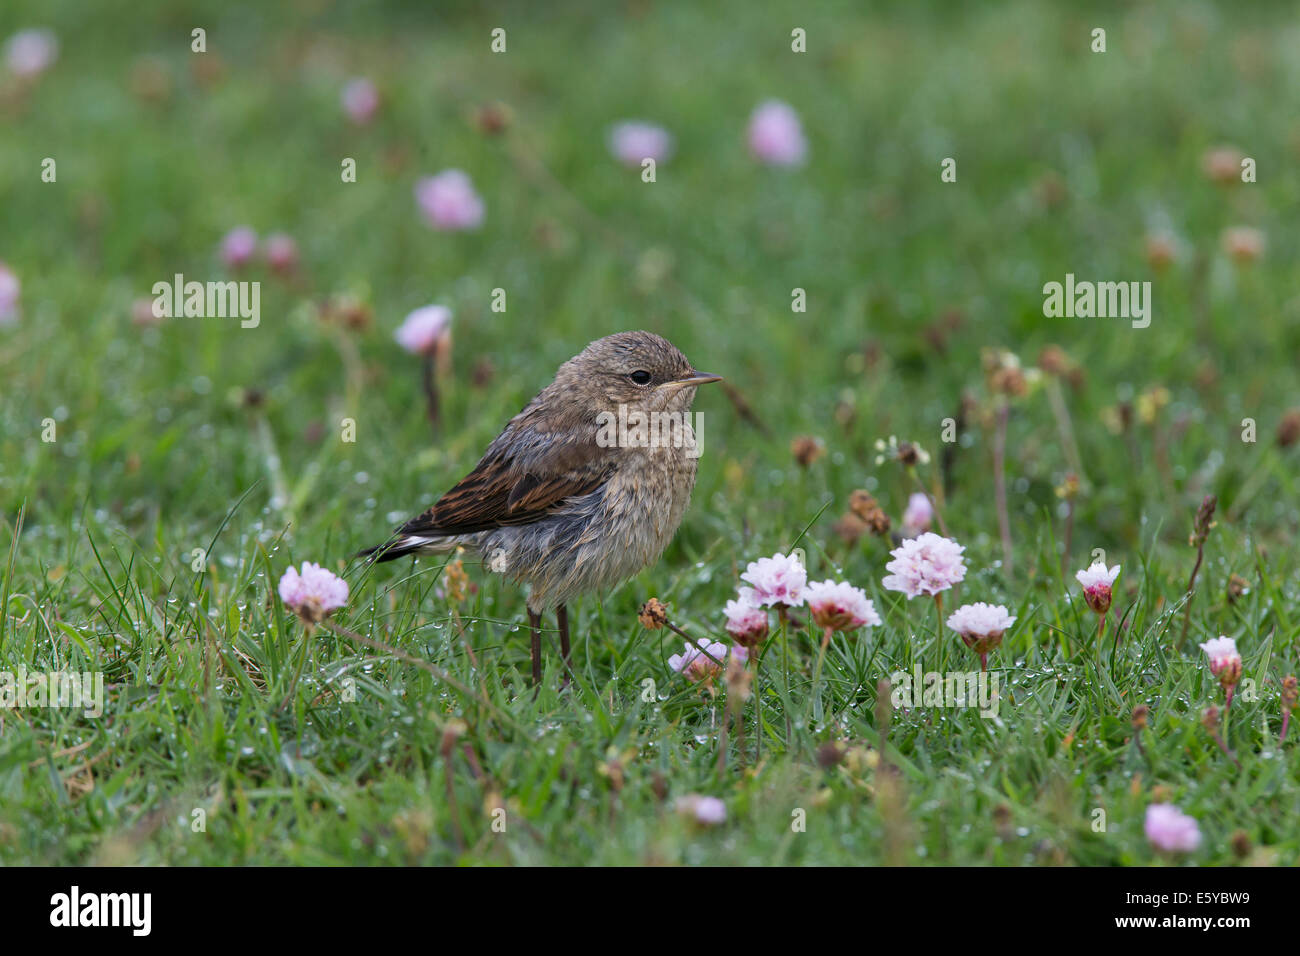 Young Northern Wheatear, Oenantha oenanthe in the rain - Stock Image